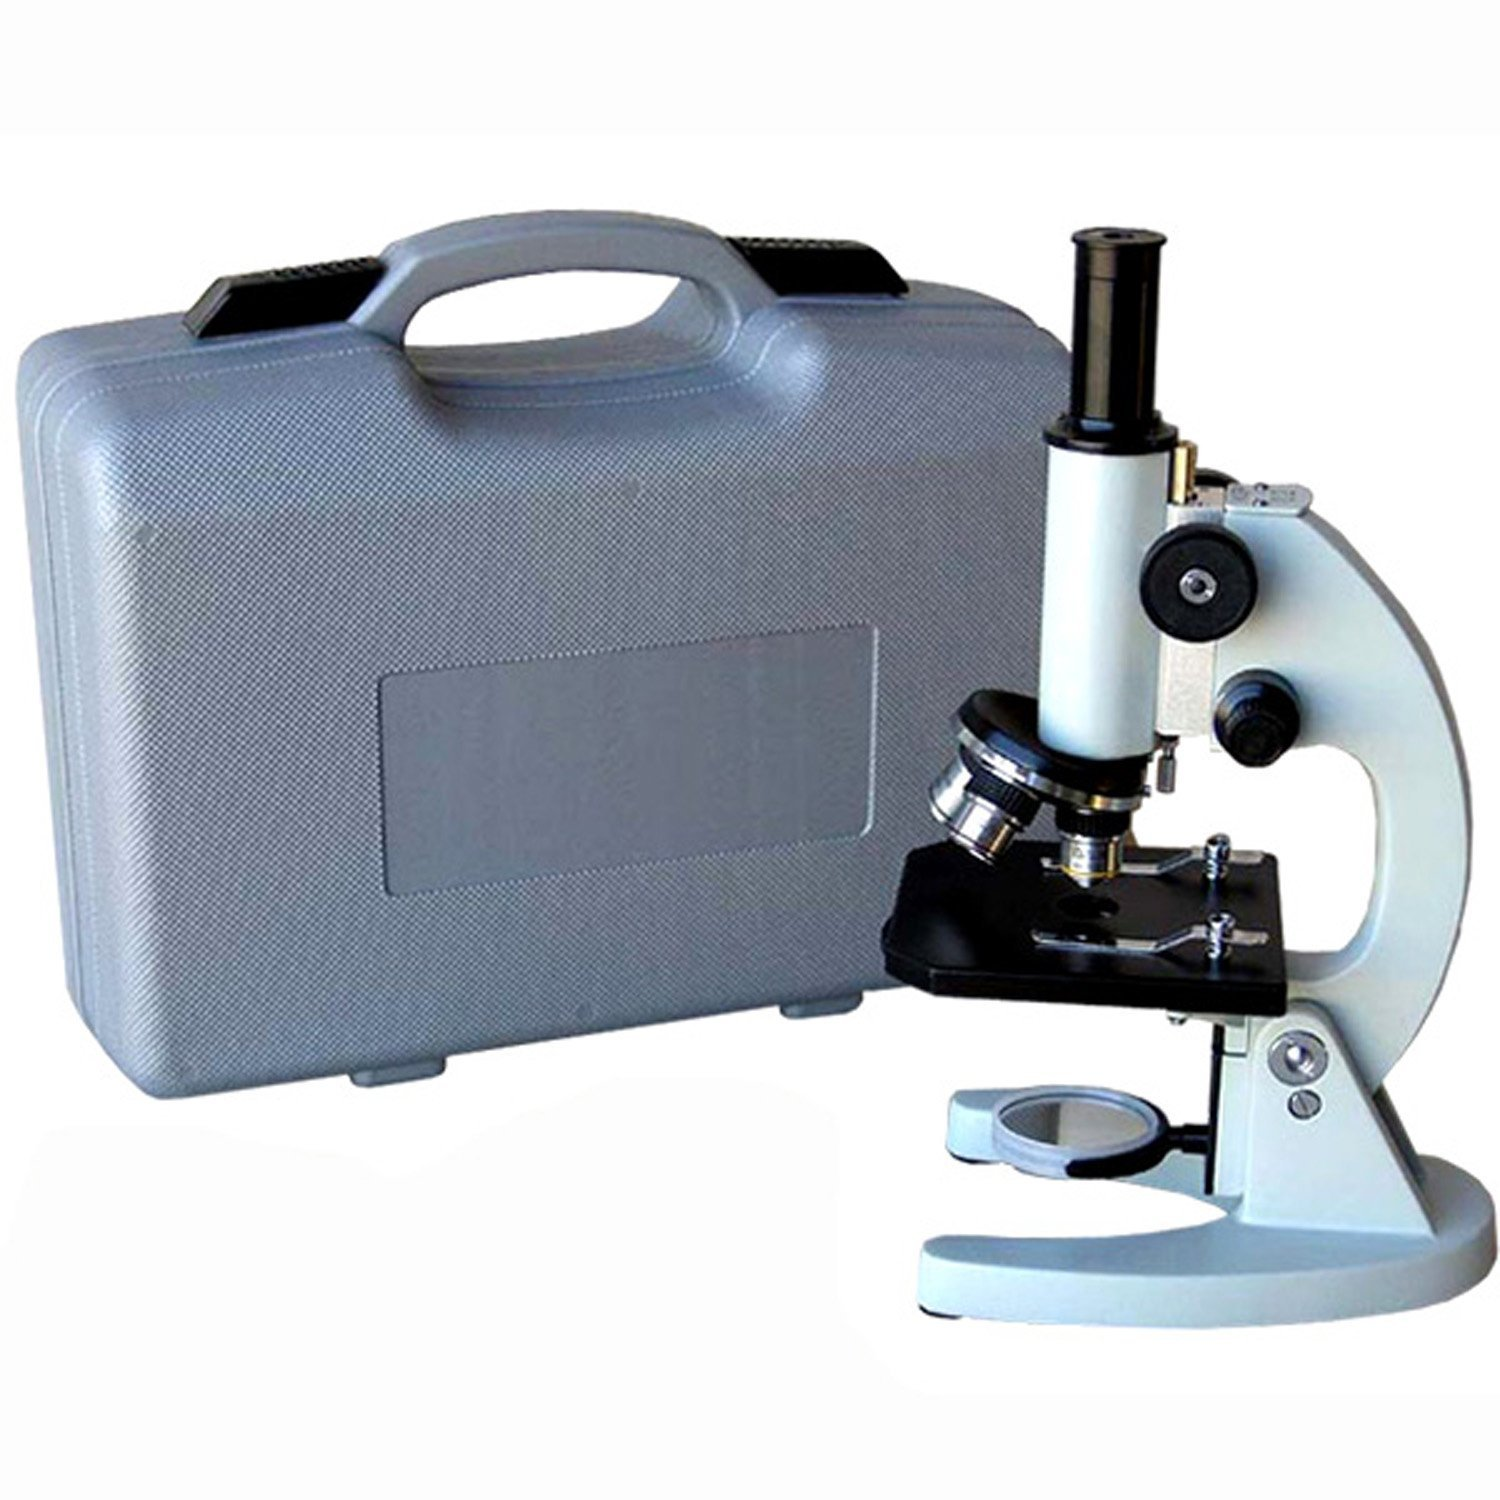 AmScope M60A-ABS 40X-640X Metal Body Glass Lens Biology Student Microscope with ABS Case by AmScope